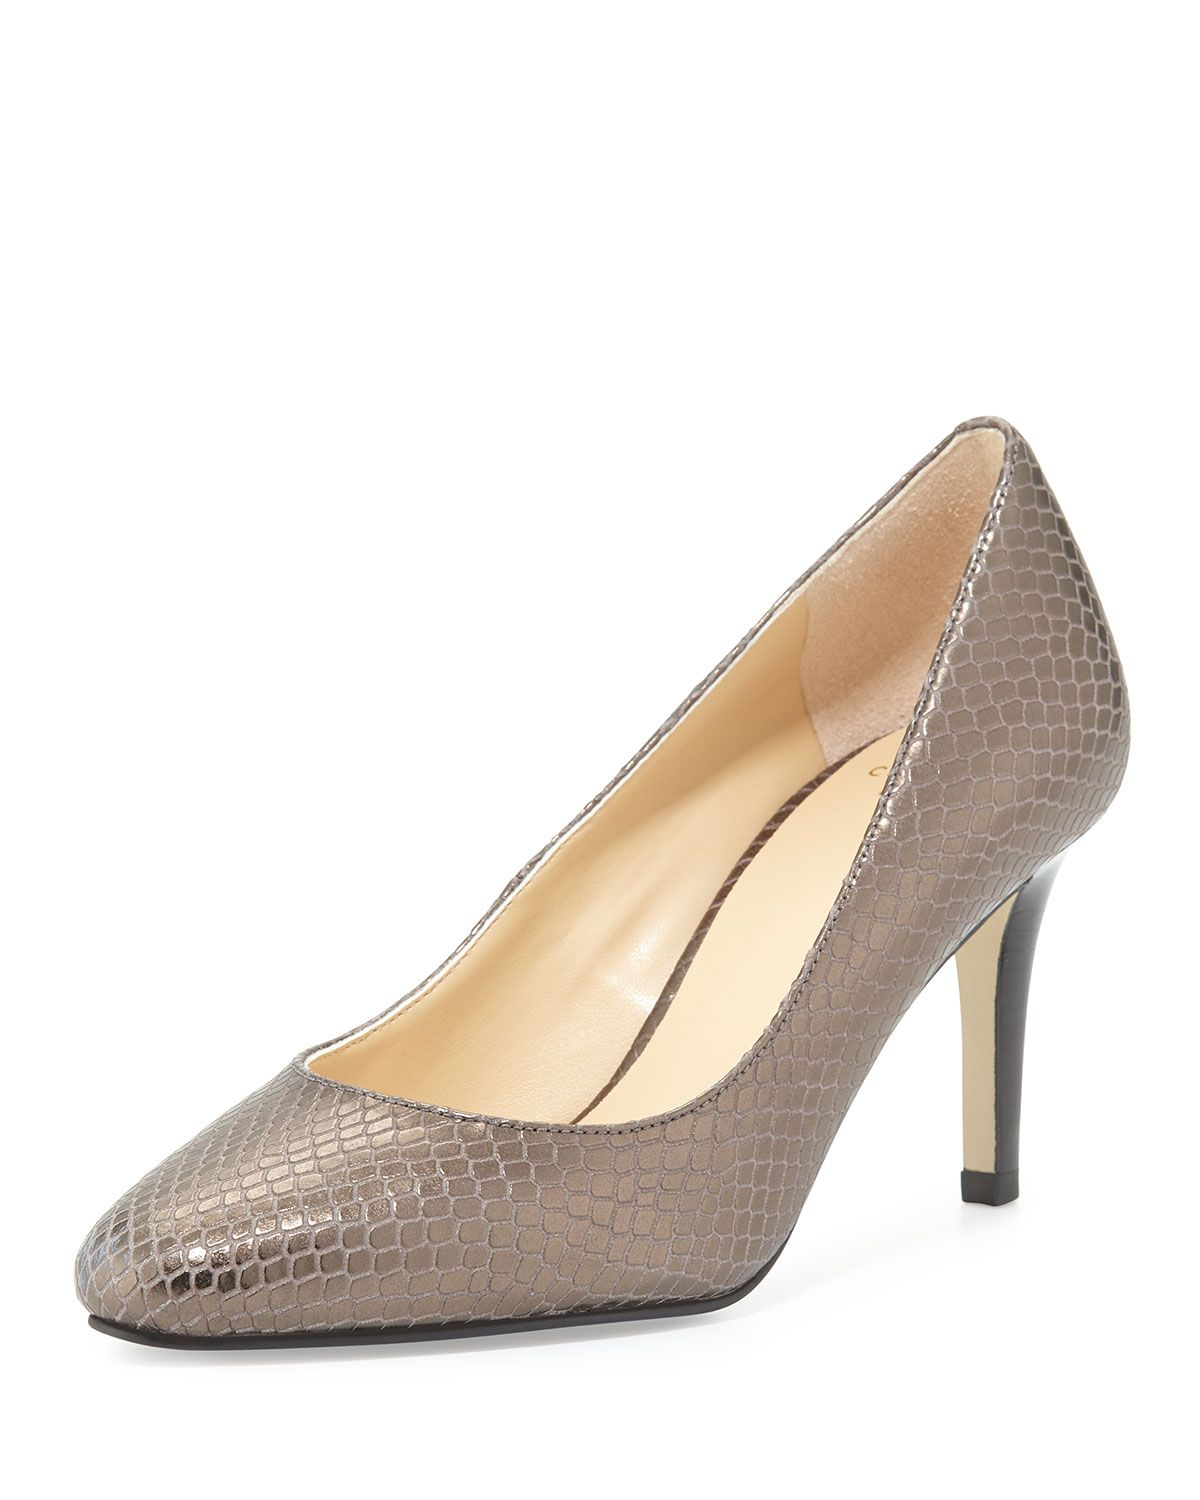 Cole Haan Lena Metallic (Grey) Snake-Embossed Pump, Storm Cloud, Women's